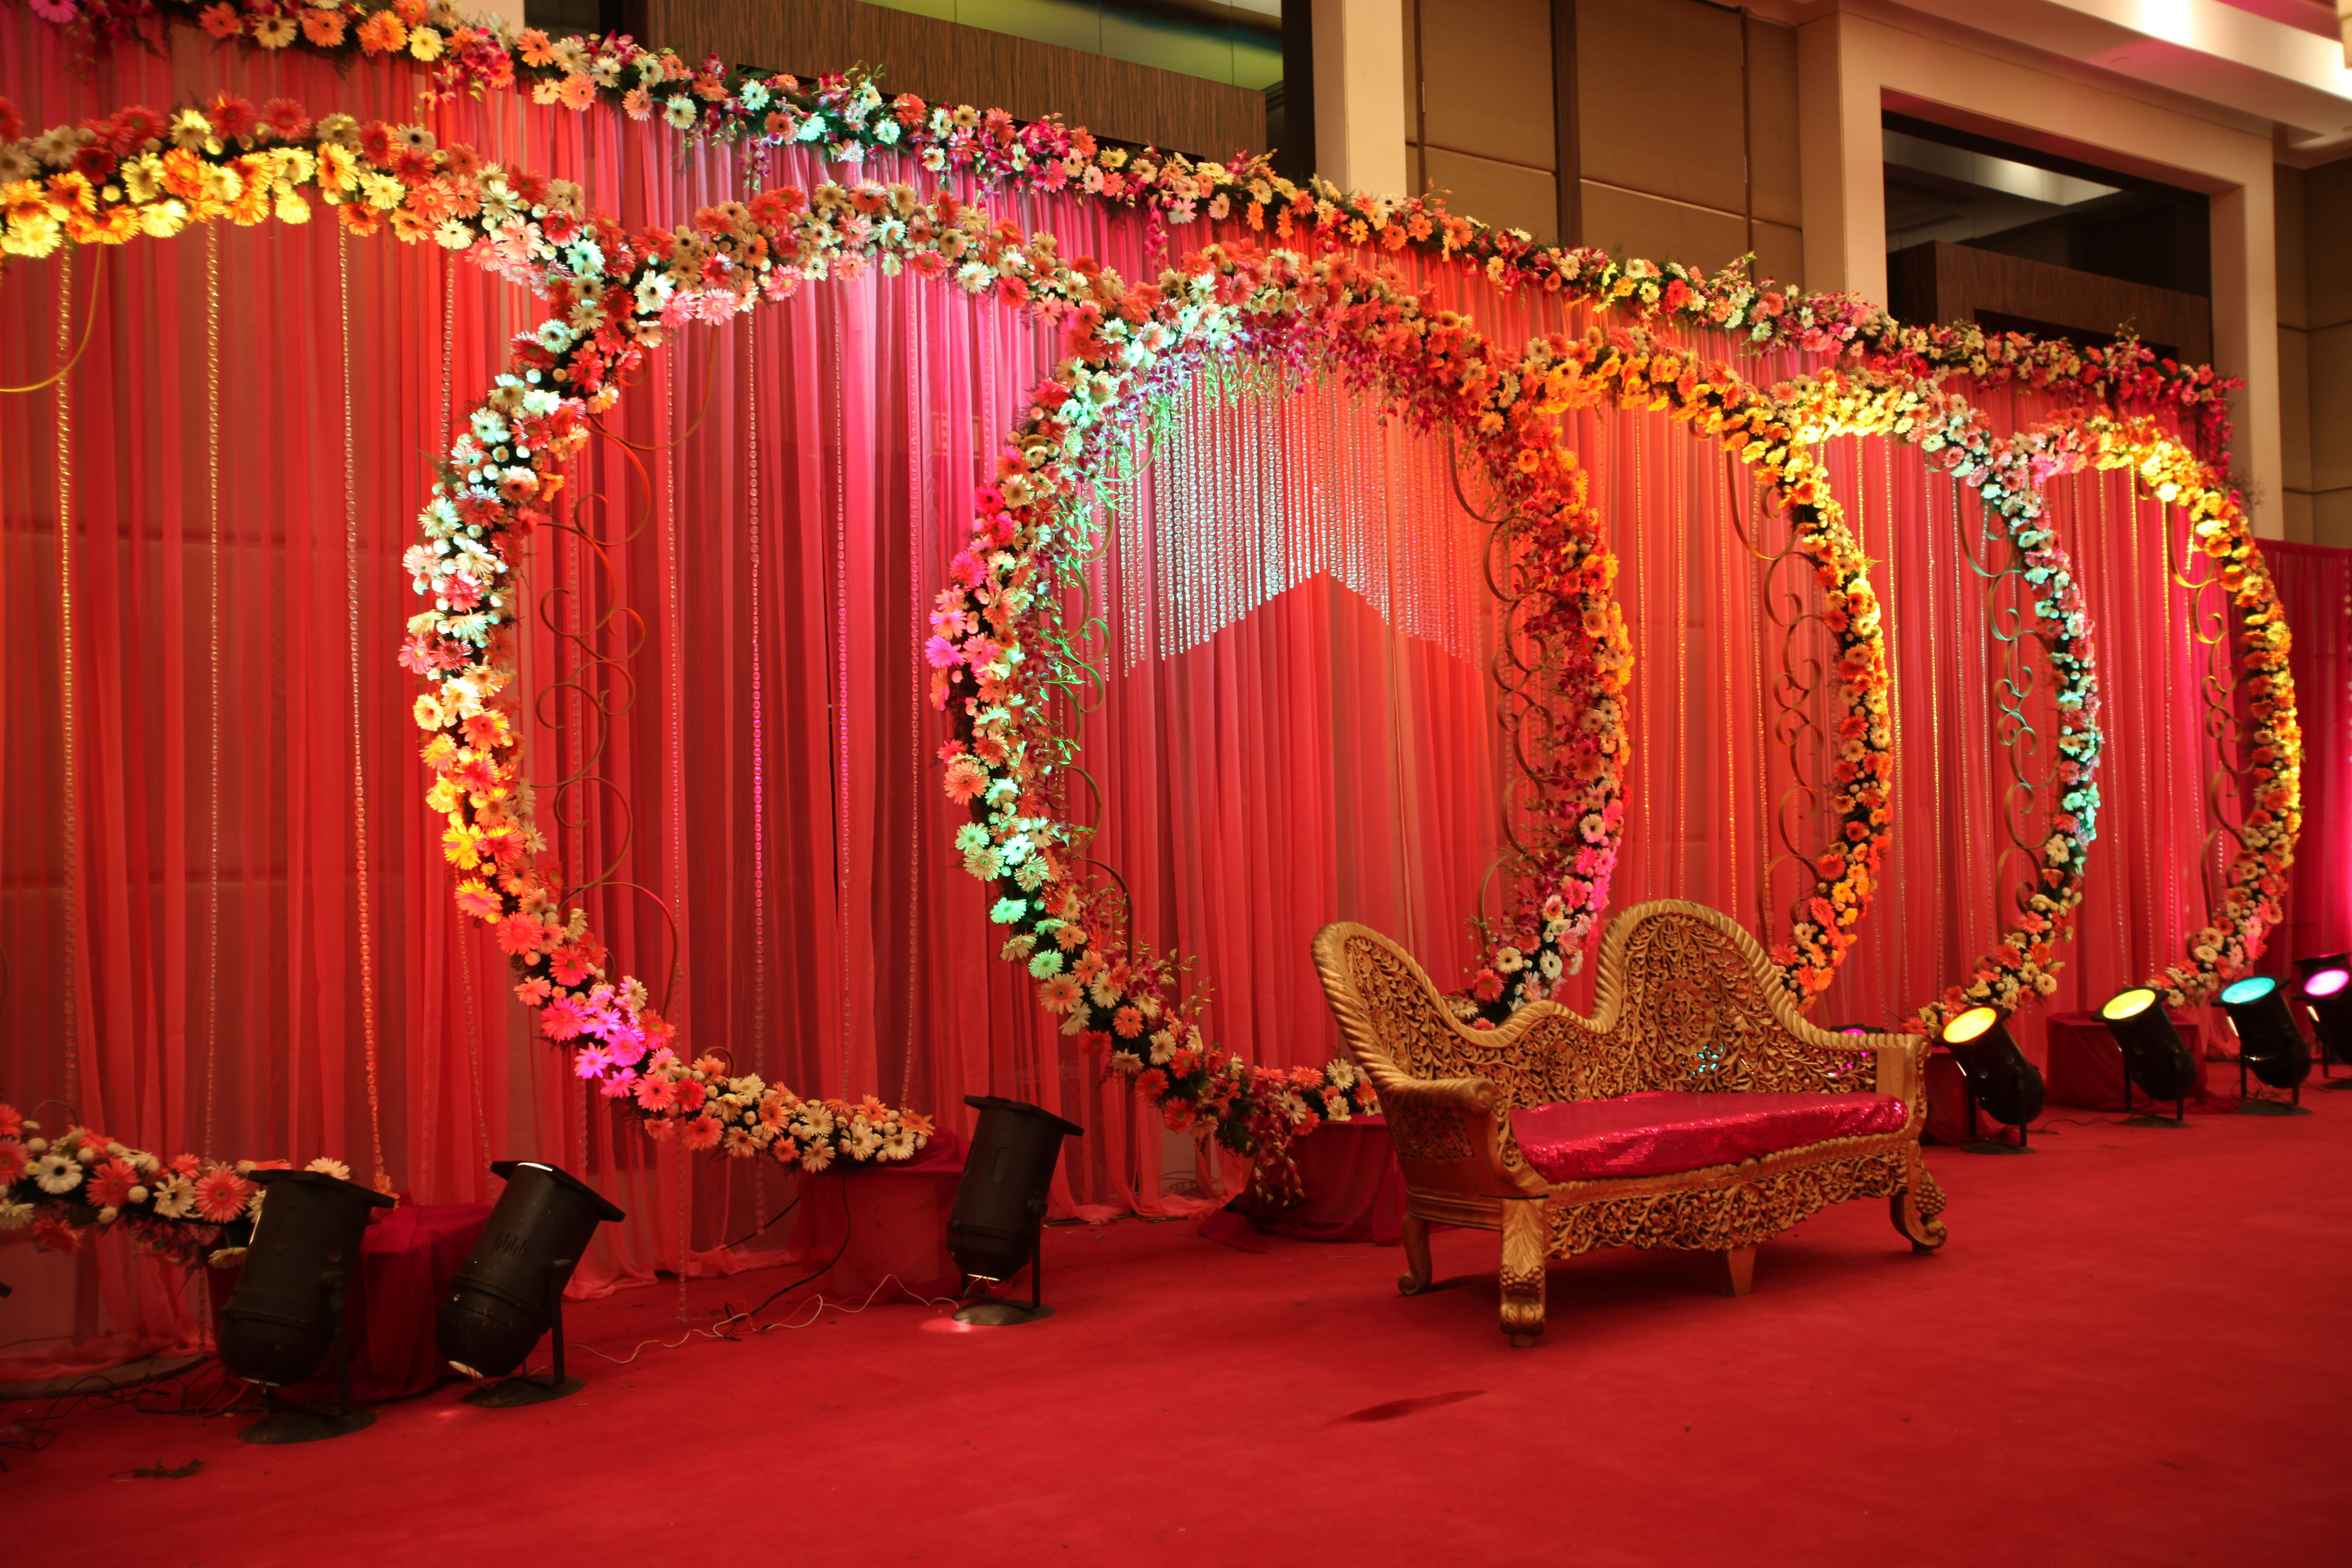 Wedding decorations delhi google search backdrops floral wedding decor idea for your wedding stage junglespirit Image collections